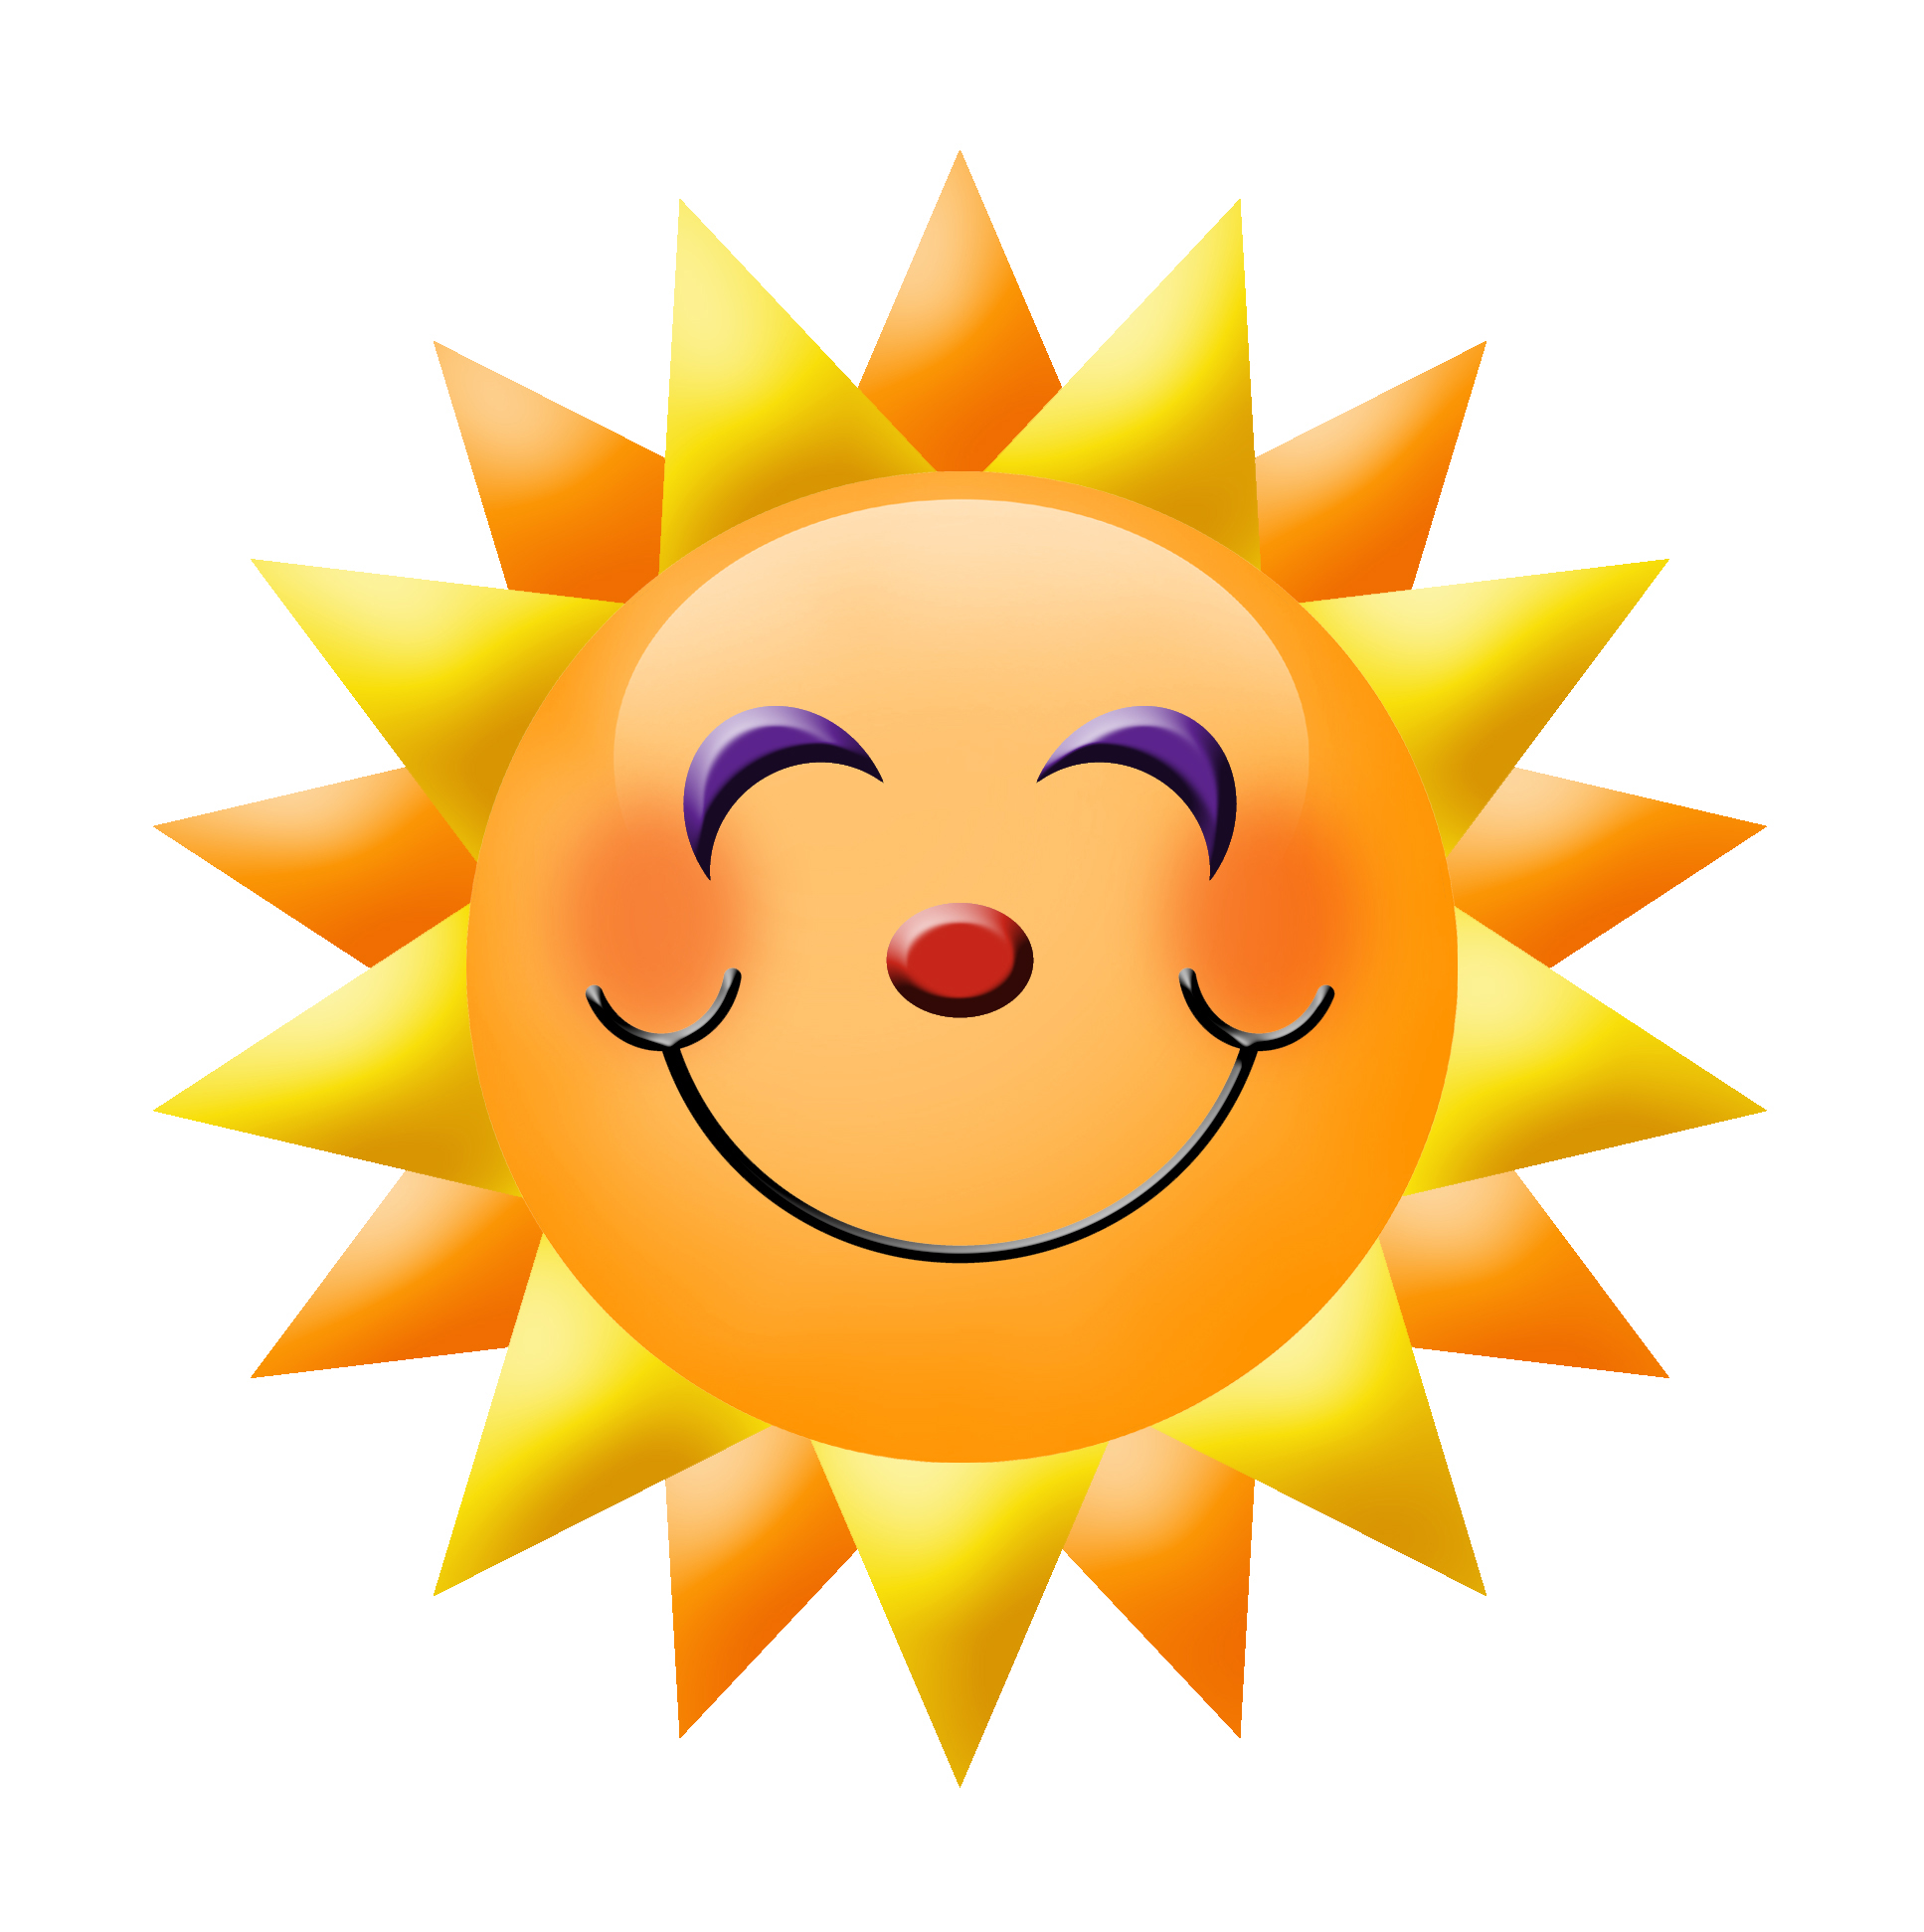 Yellow sun happy face clipart clipart free download Free Smiley Sun Cliparts, Download Free Clip Art, Free Clip ... clipart free download